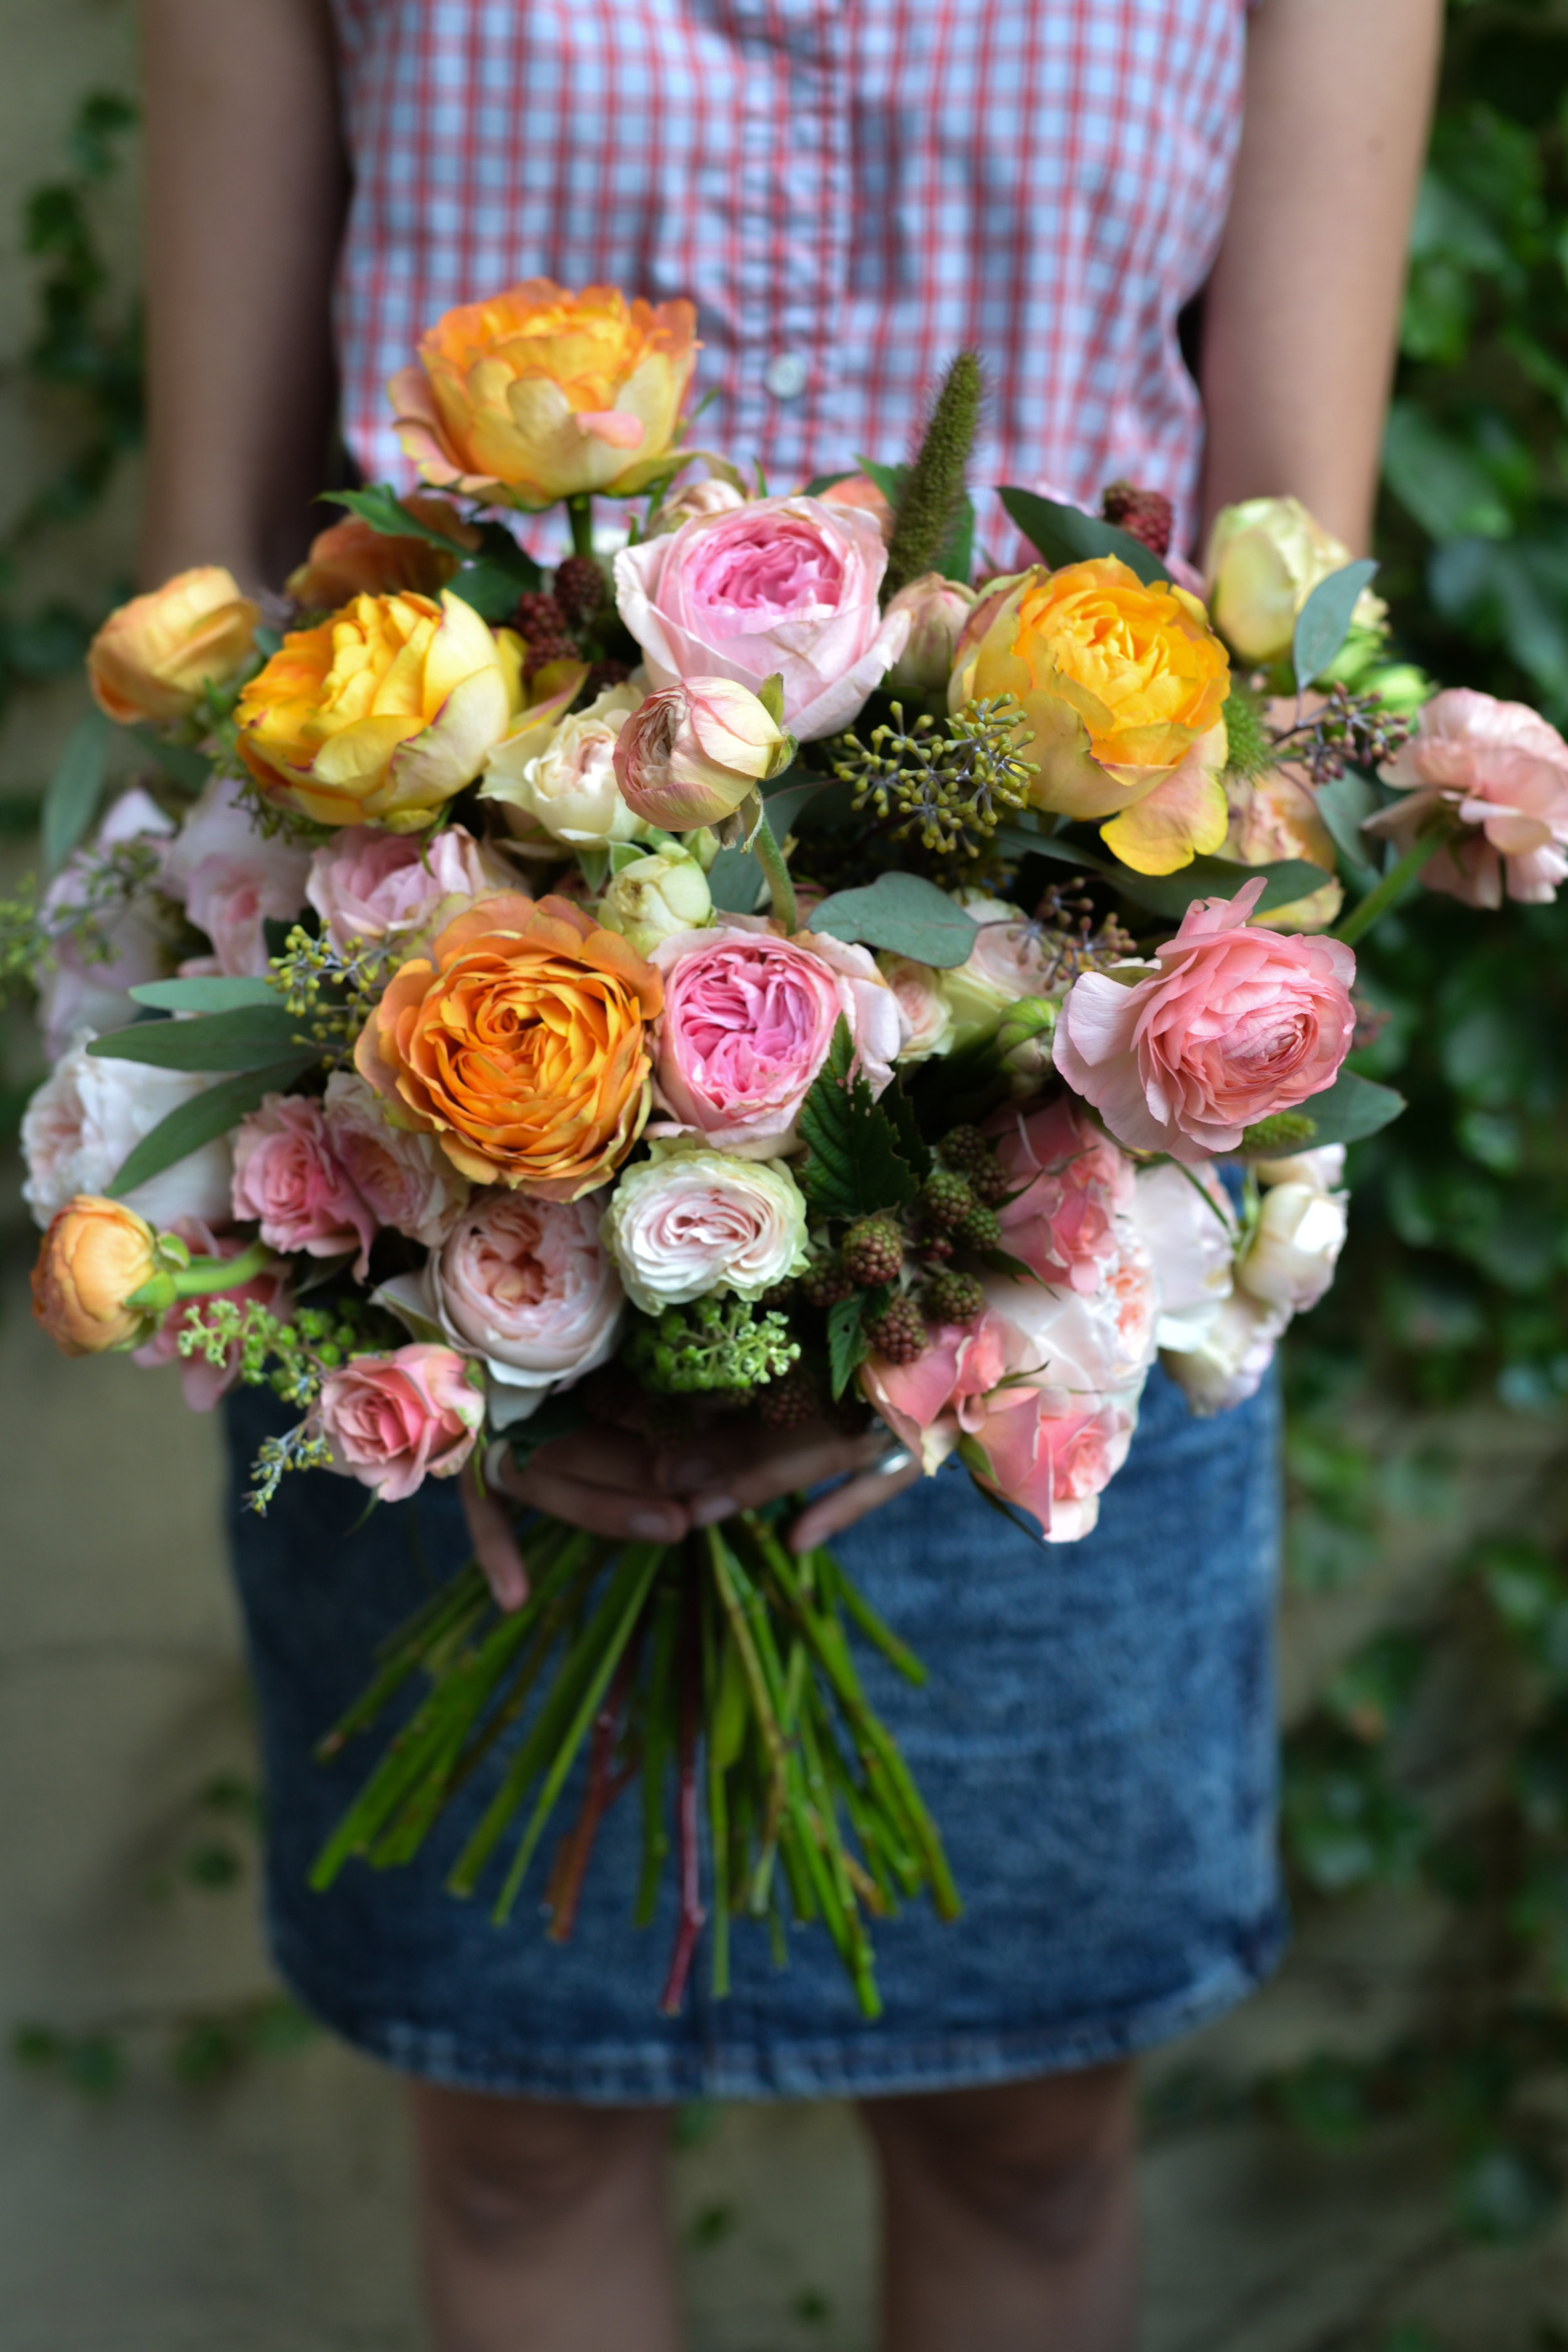 The bridal bouquet after completion at the Rosehip Shop!